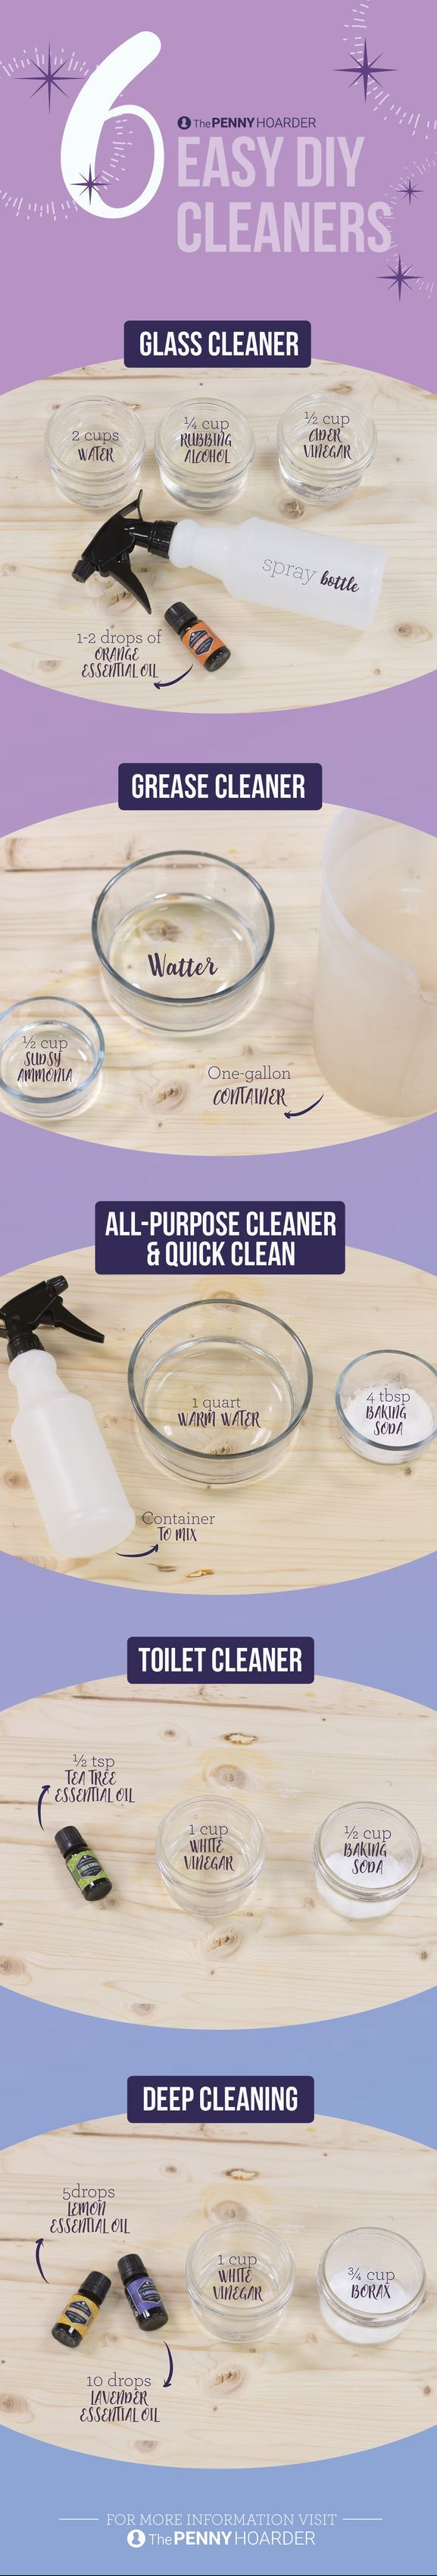 Want to use eco-friendly cleaners but don't want to spend a ton of money? Try these recipes for homemade cleaning supplies that use inexpensive and mostly natural ingredients. You'll have a sparkling-clean house in no time! @thepennyhoarder